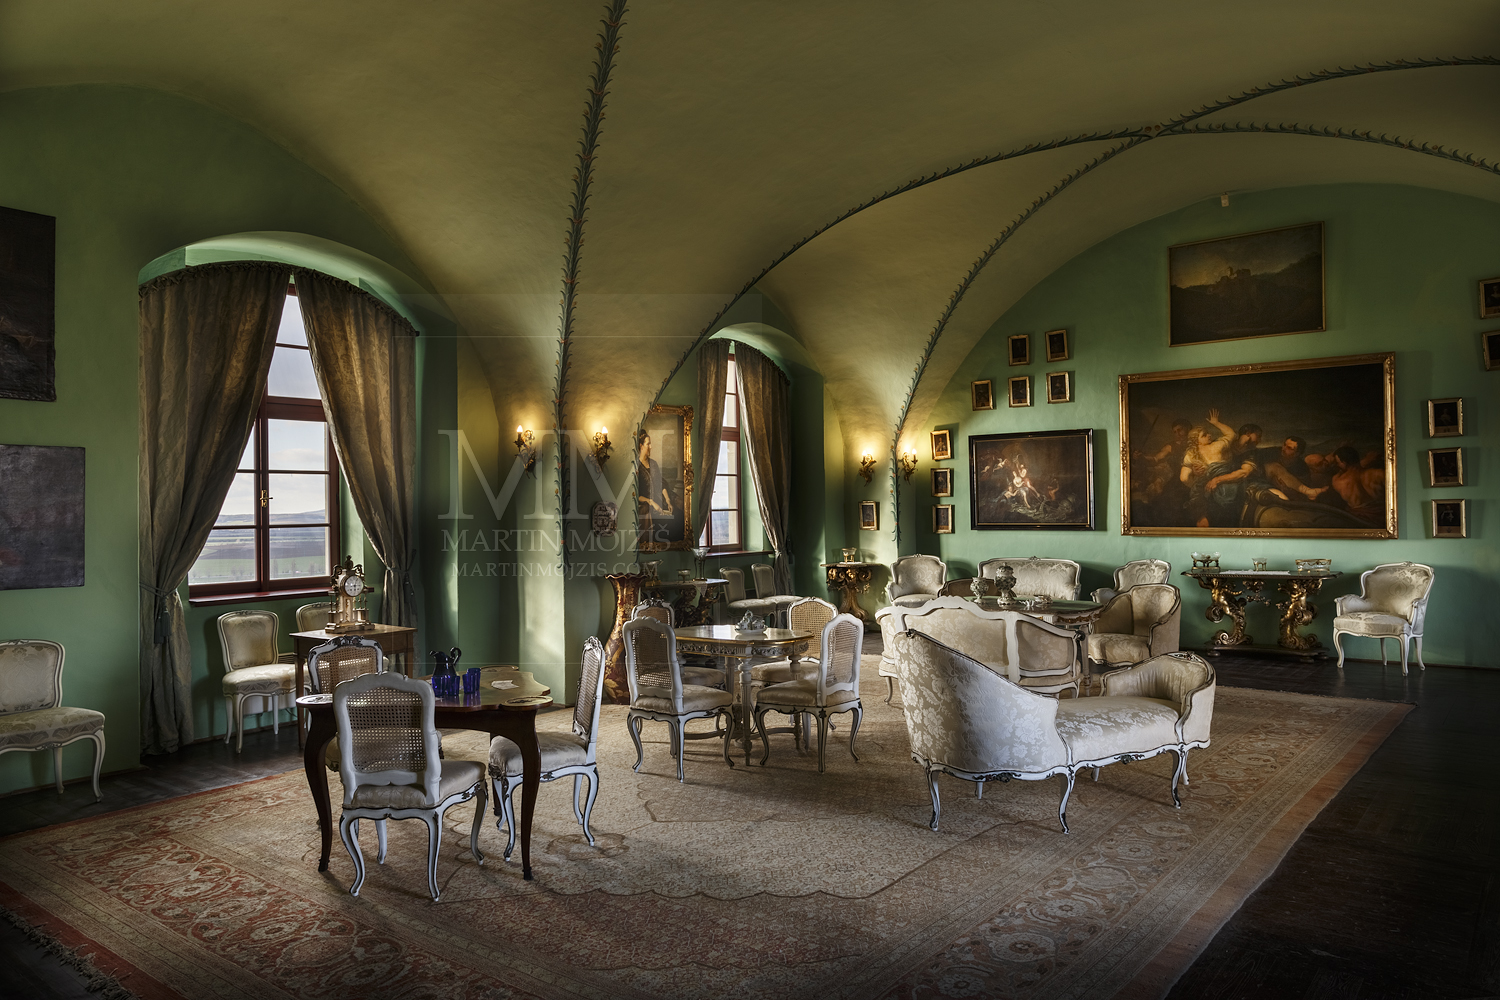 Chateau Melnik – big salon. Professional photography of architecture - interiors.